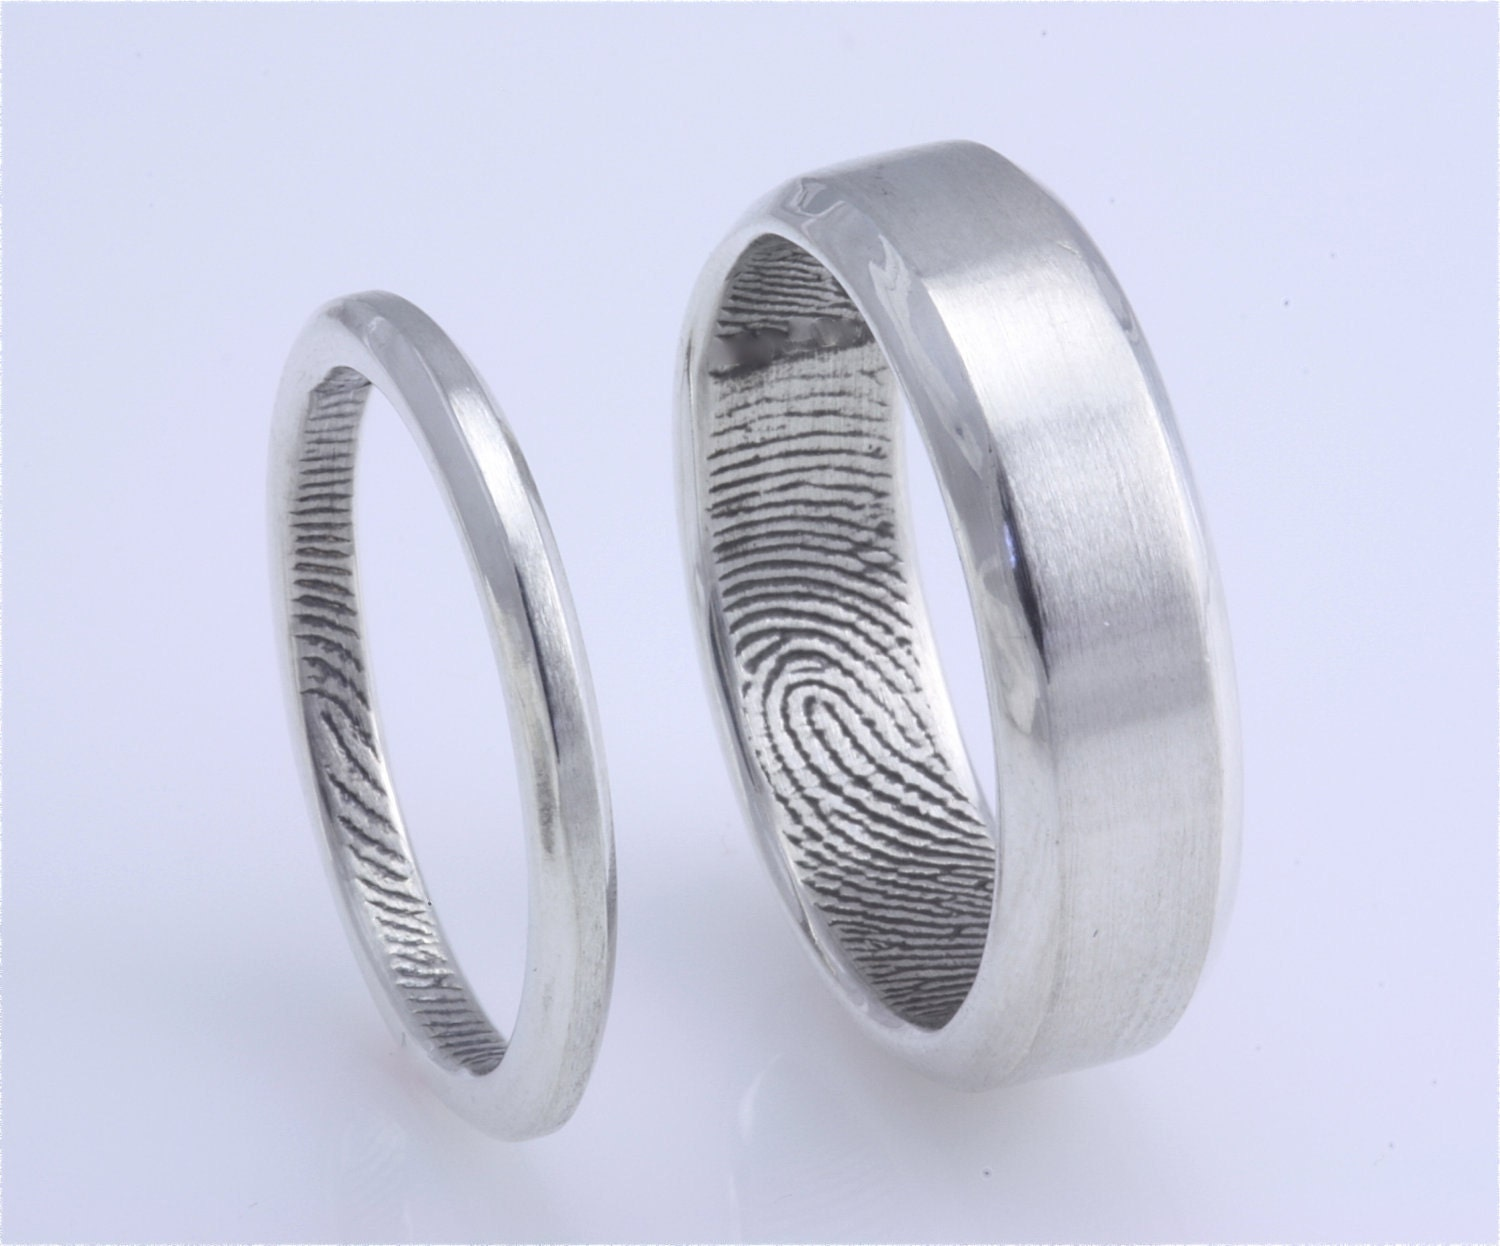 and heres mine - Different Wedding Rings